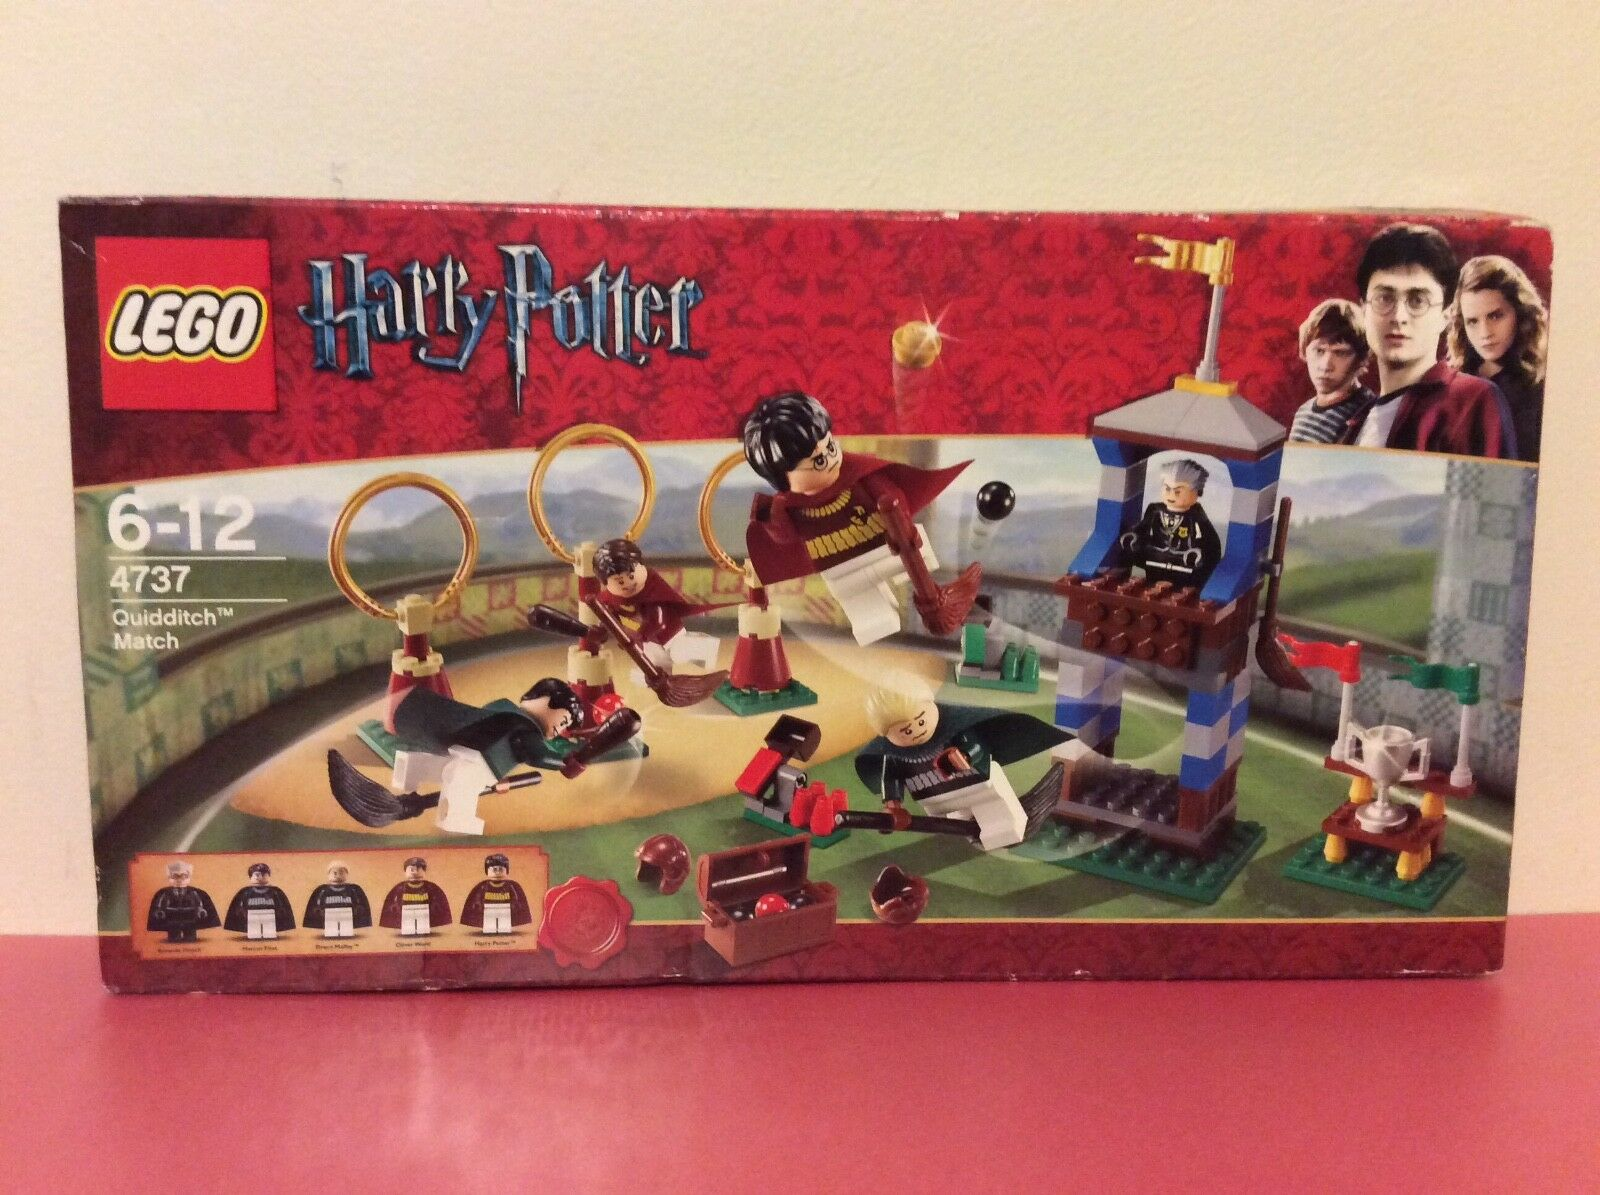 Lego HARRY POTTER Quidditch Match - BRAND NEW & SEALED, SCARCE